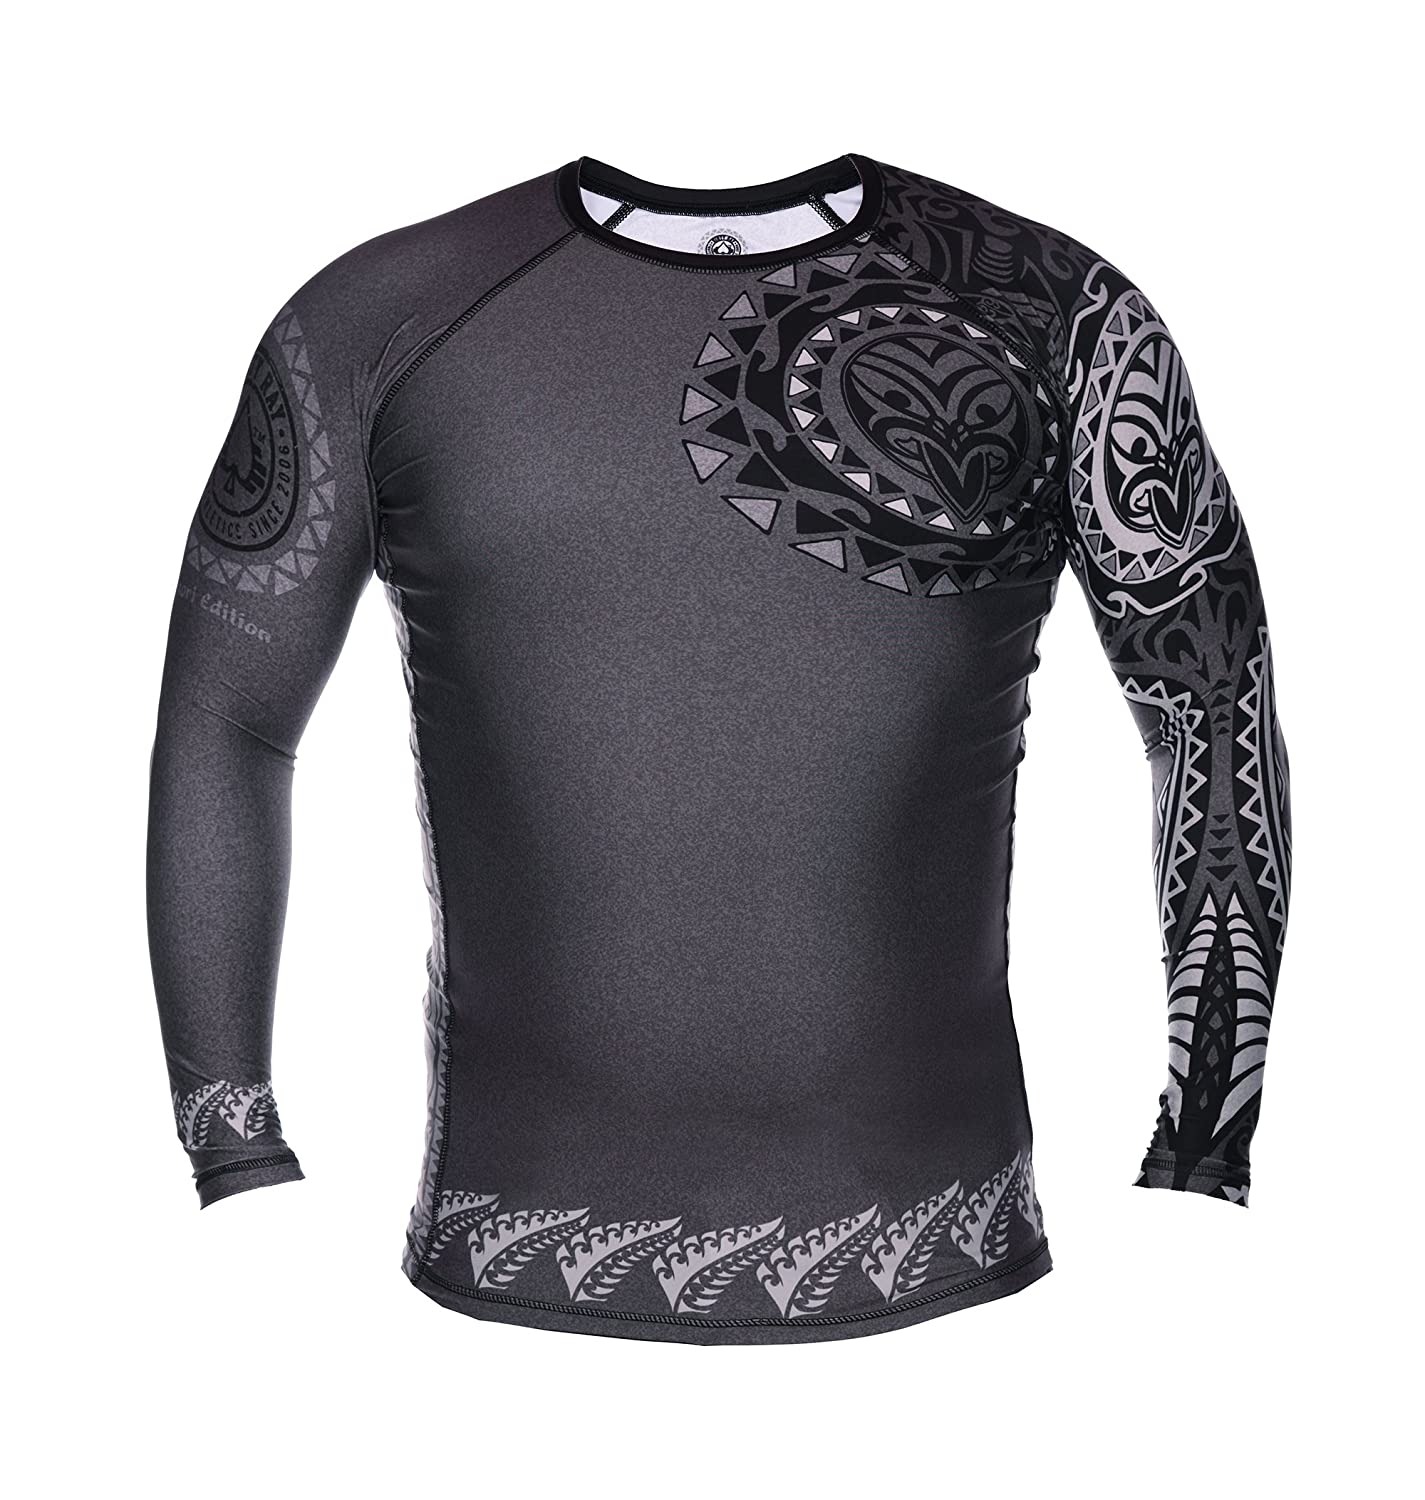 Image of Dirty Ray Long Sleeve Rash Guard MAORI